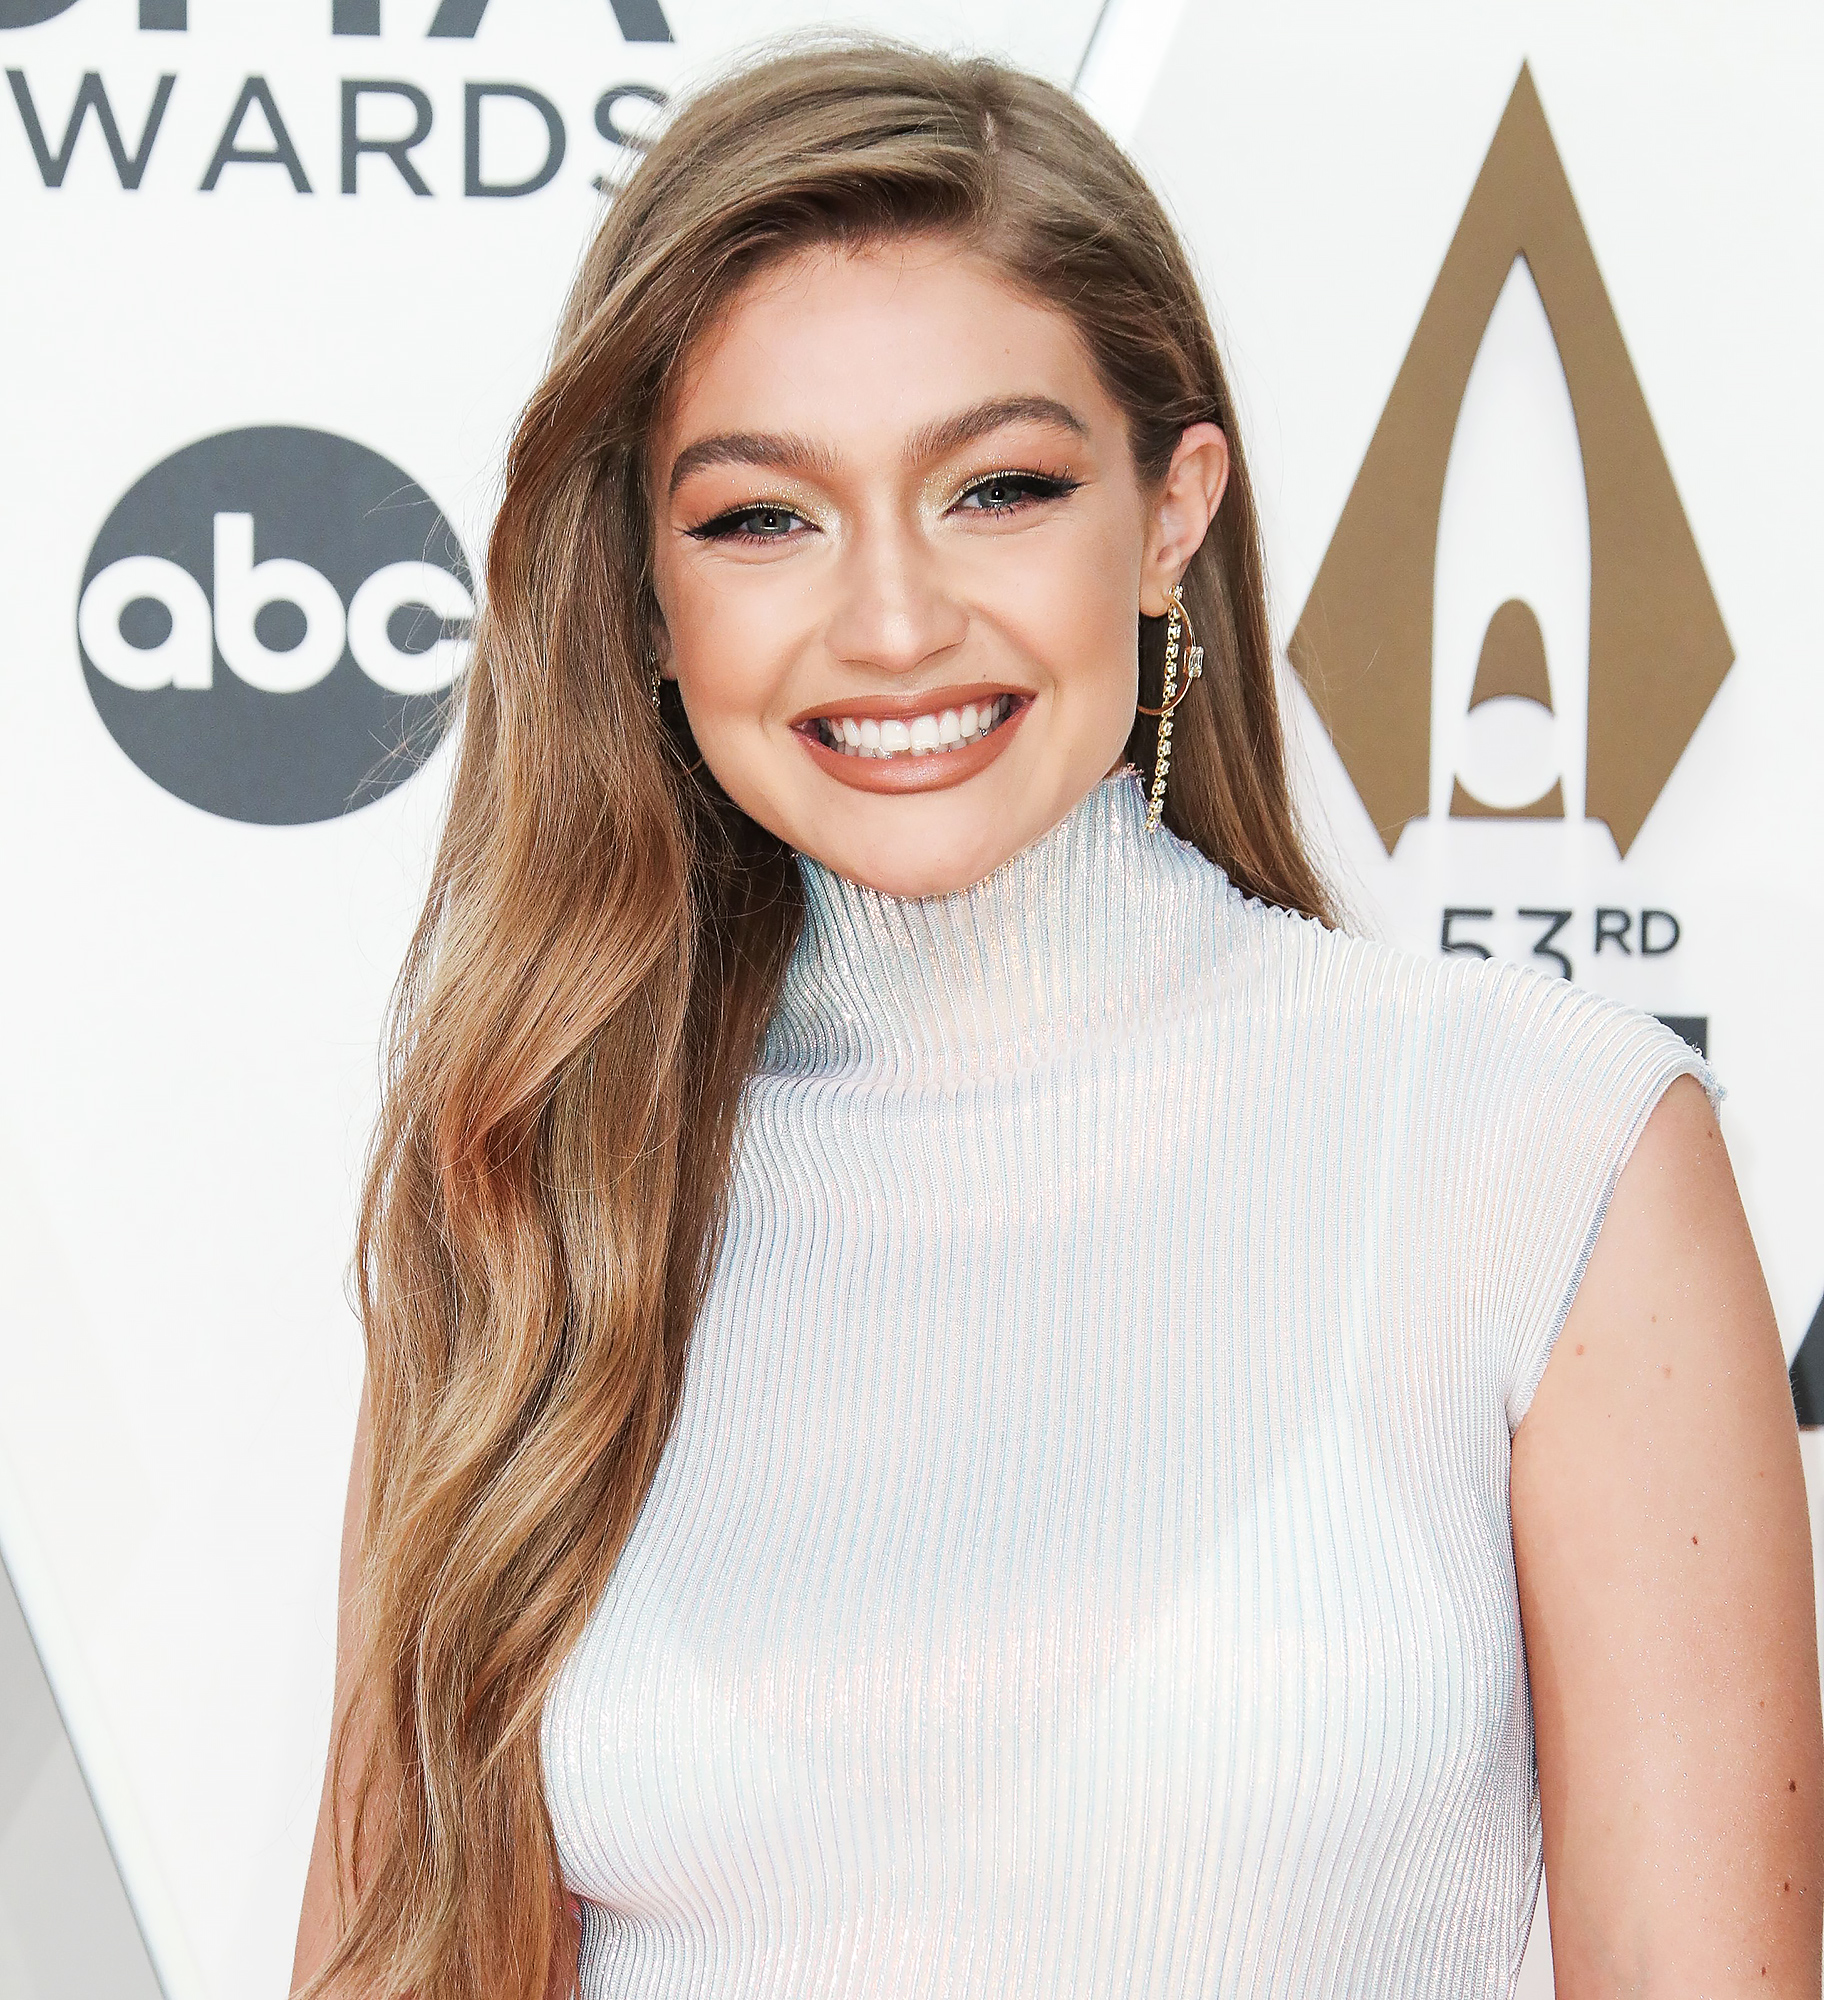 Gigi Hadid Talked About Starting a Family Months Before Pregnancy News